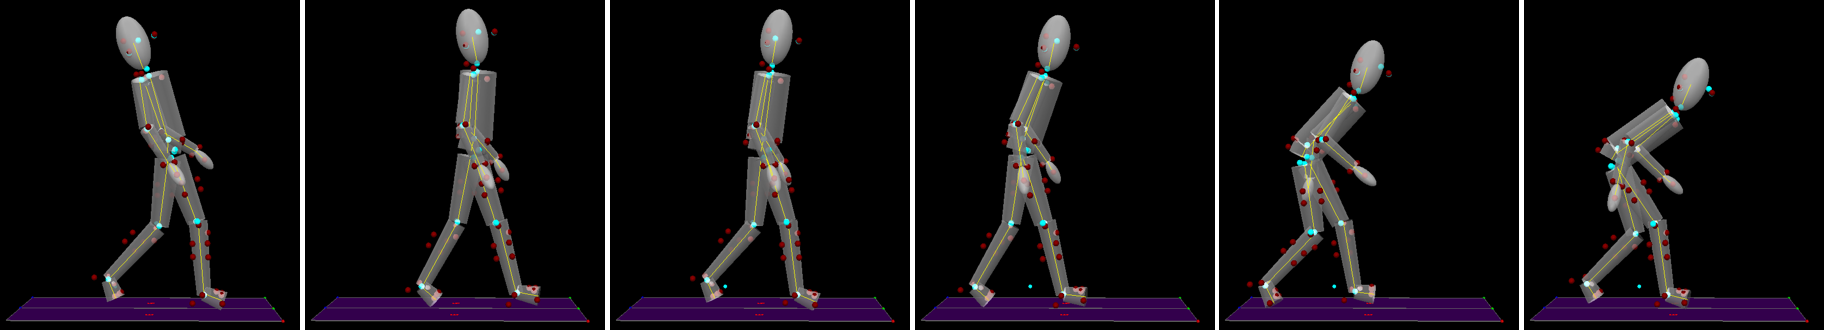 Several frames of motion capture showing a person leaning to different angles.